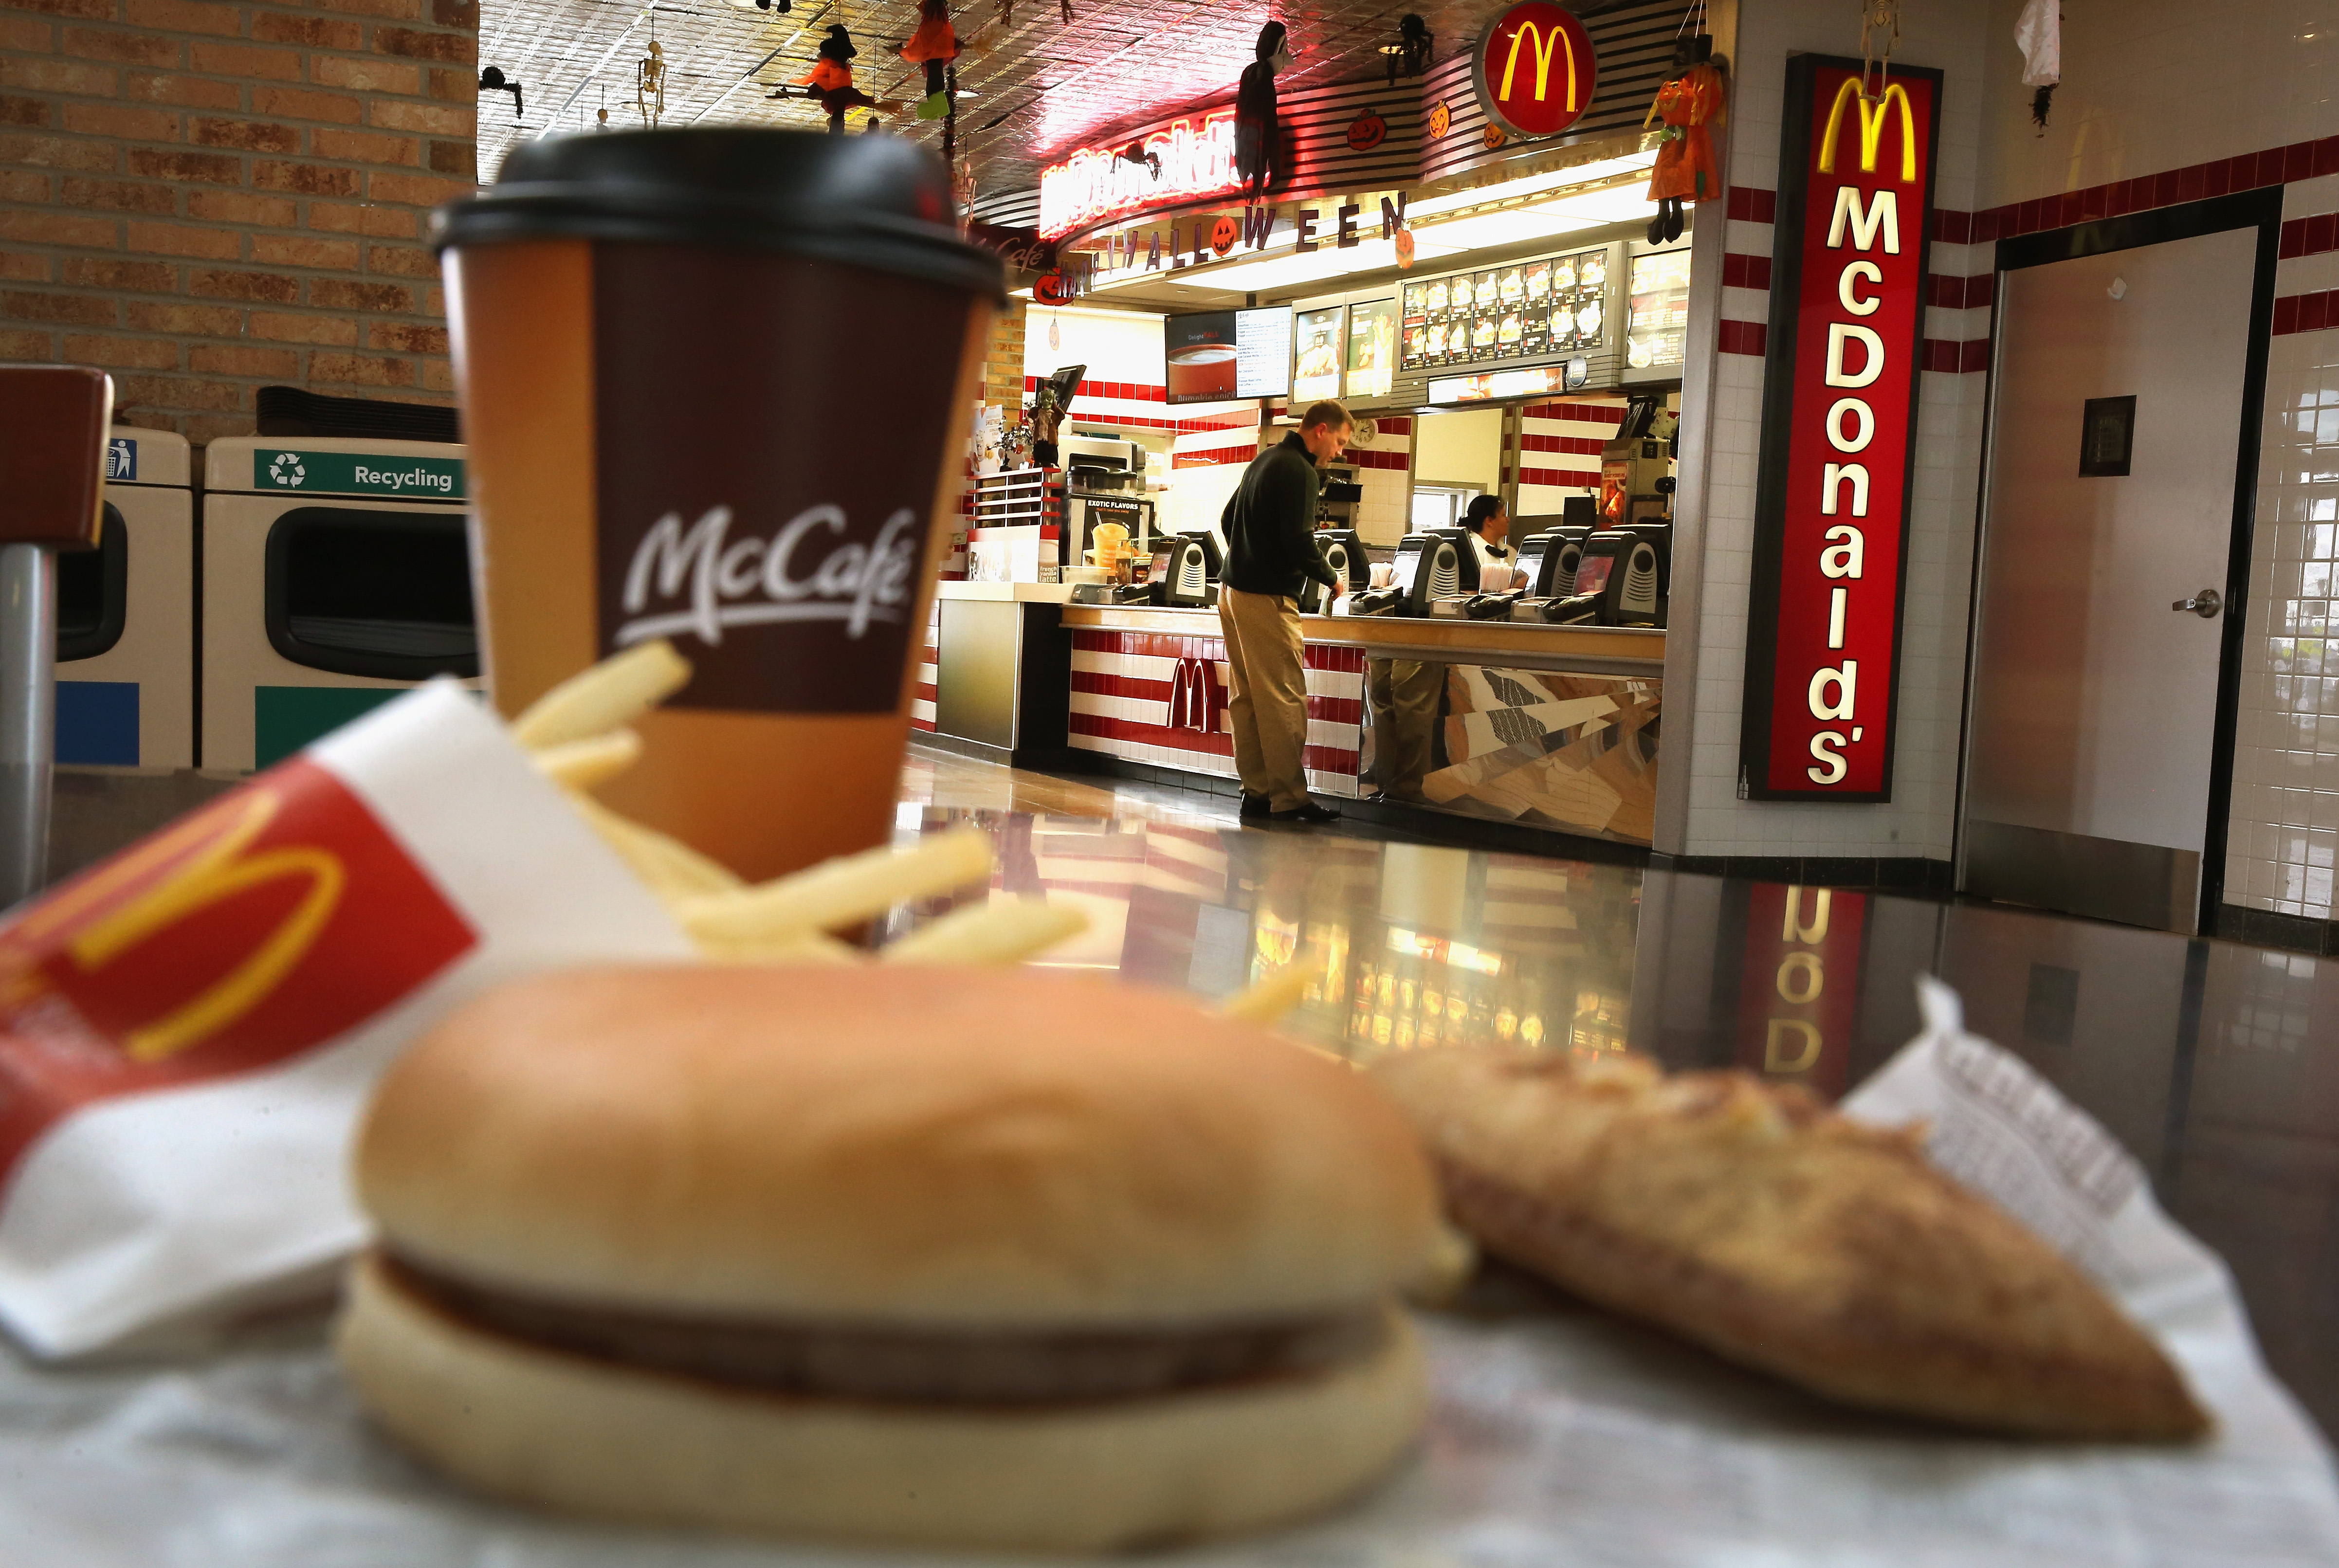 Not such a value: The high cost of cheap food